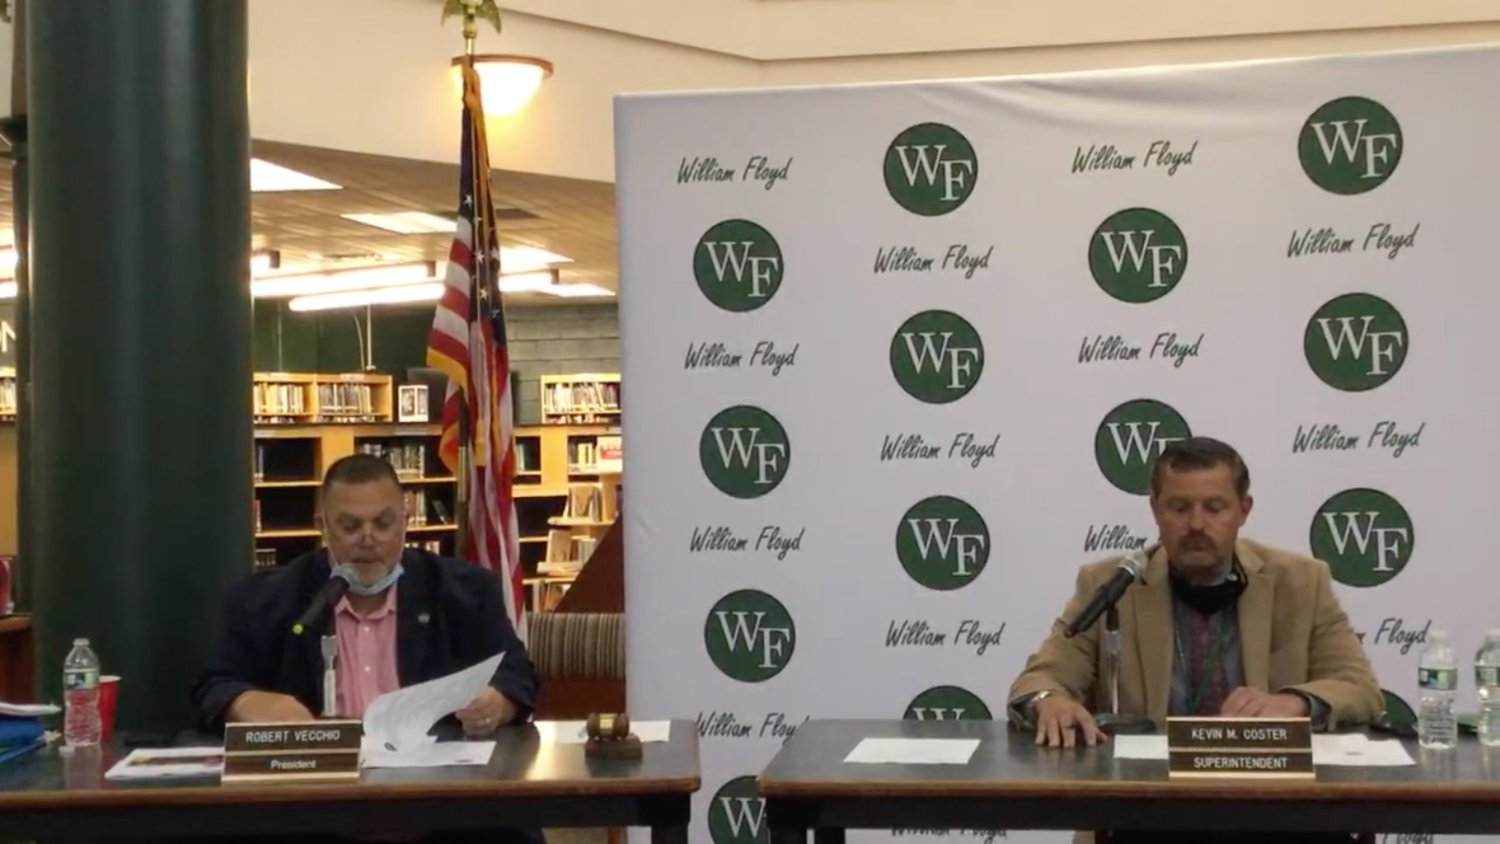 Board of education president Bob Vecchio and superintendent of schools Kevin Coster, along with other administrators, discuss William Floyd's plans to reopen this fall in a meeting on Tuesday.